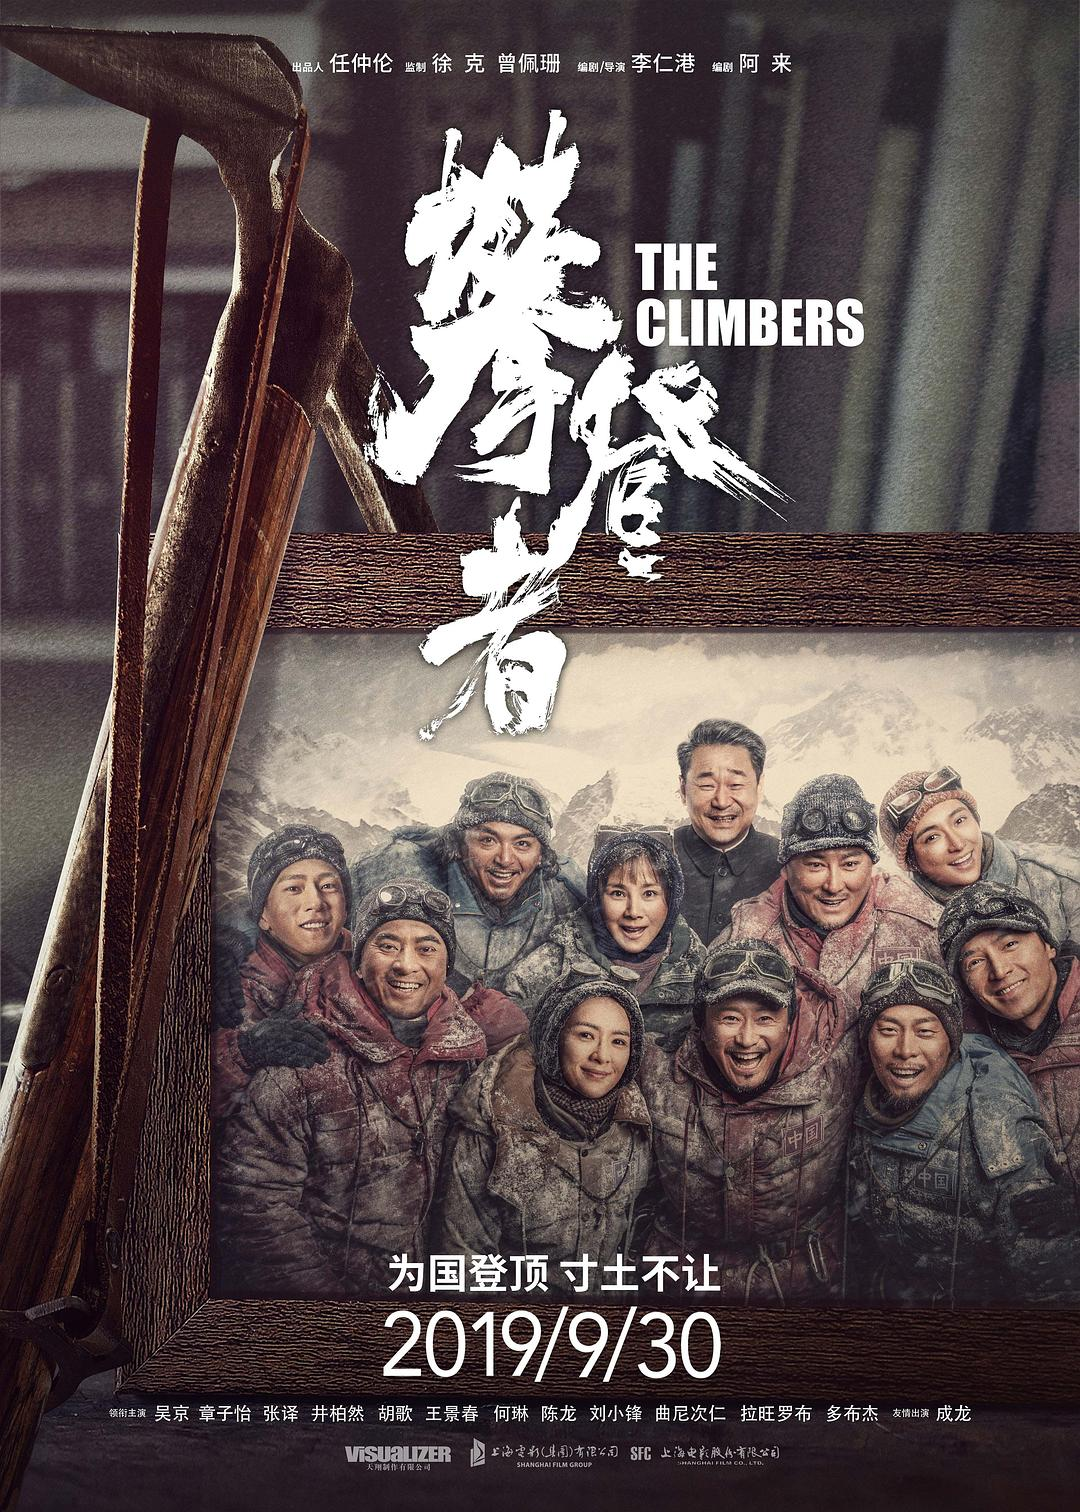 悠悠MP4_MP4电影下载_攀登者 The.Climbers.2019.LIMITED.1080p.BluRay.x264-ROVERS 9.84GB